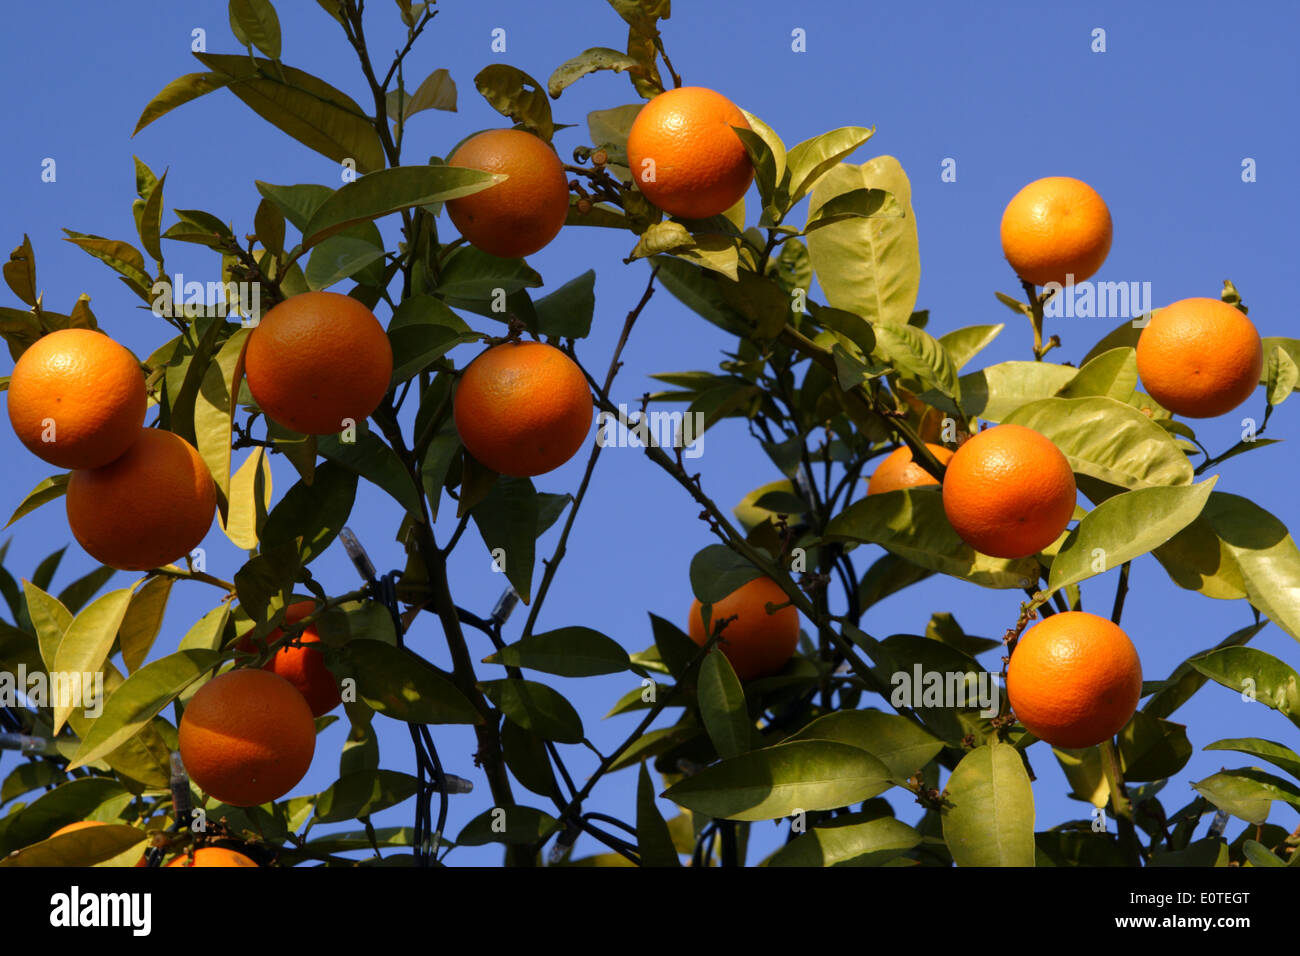 orange-tree-in-athens-greece-E0TEGT.jpg